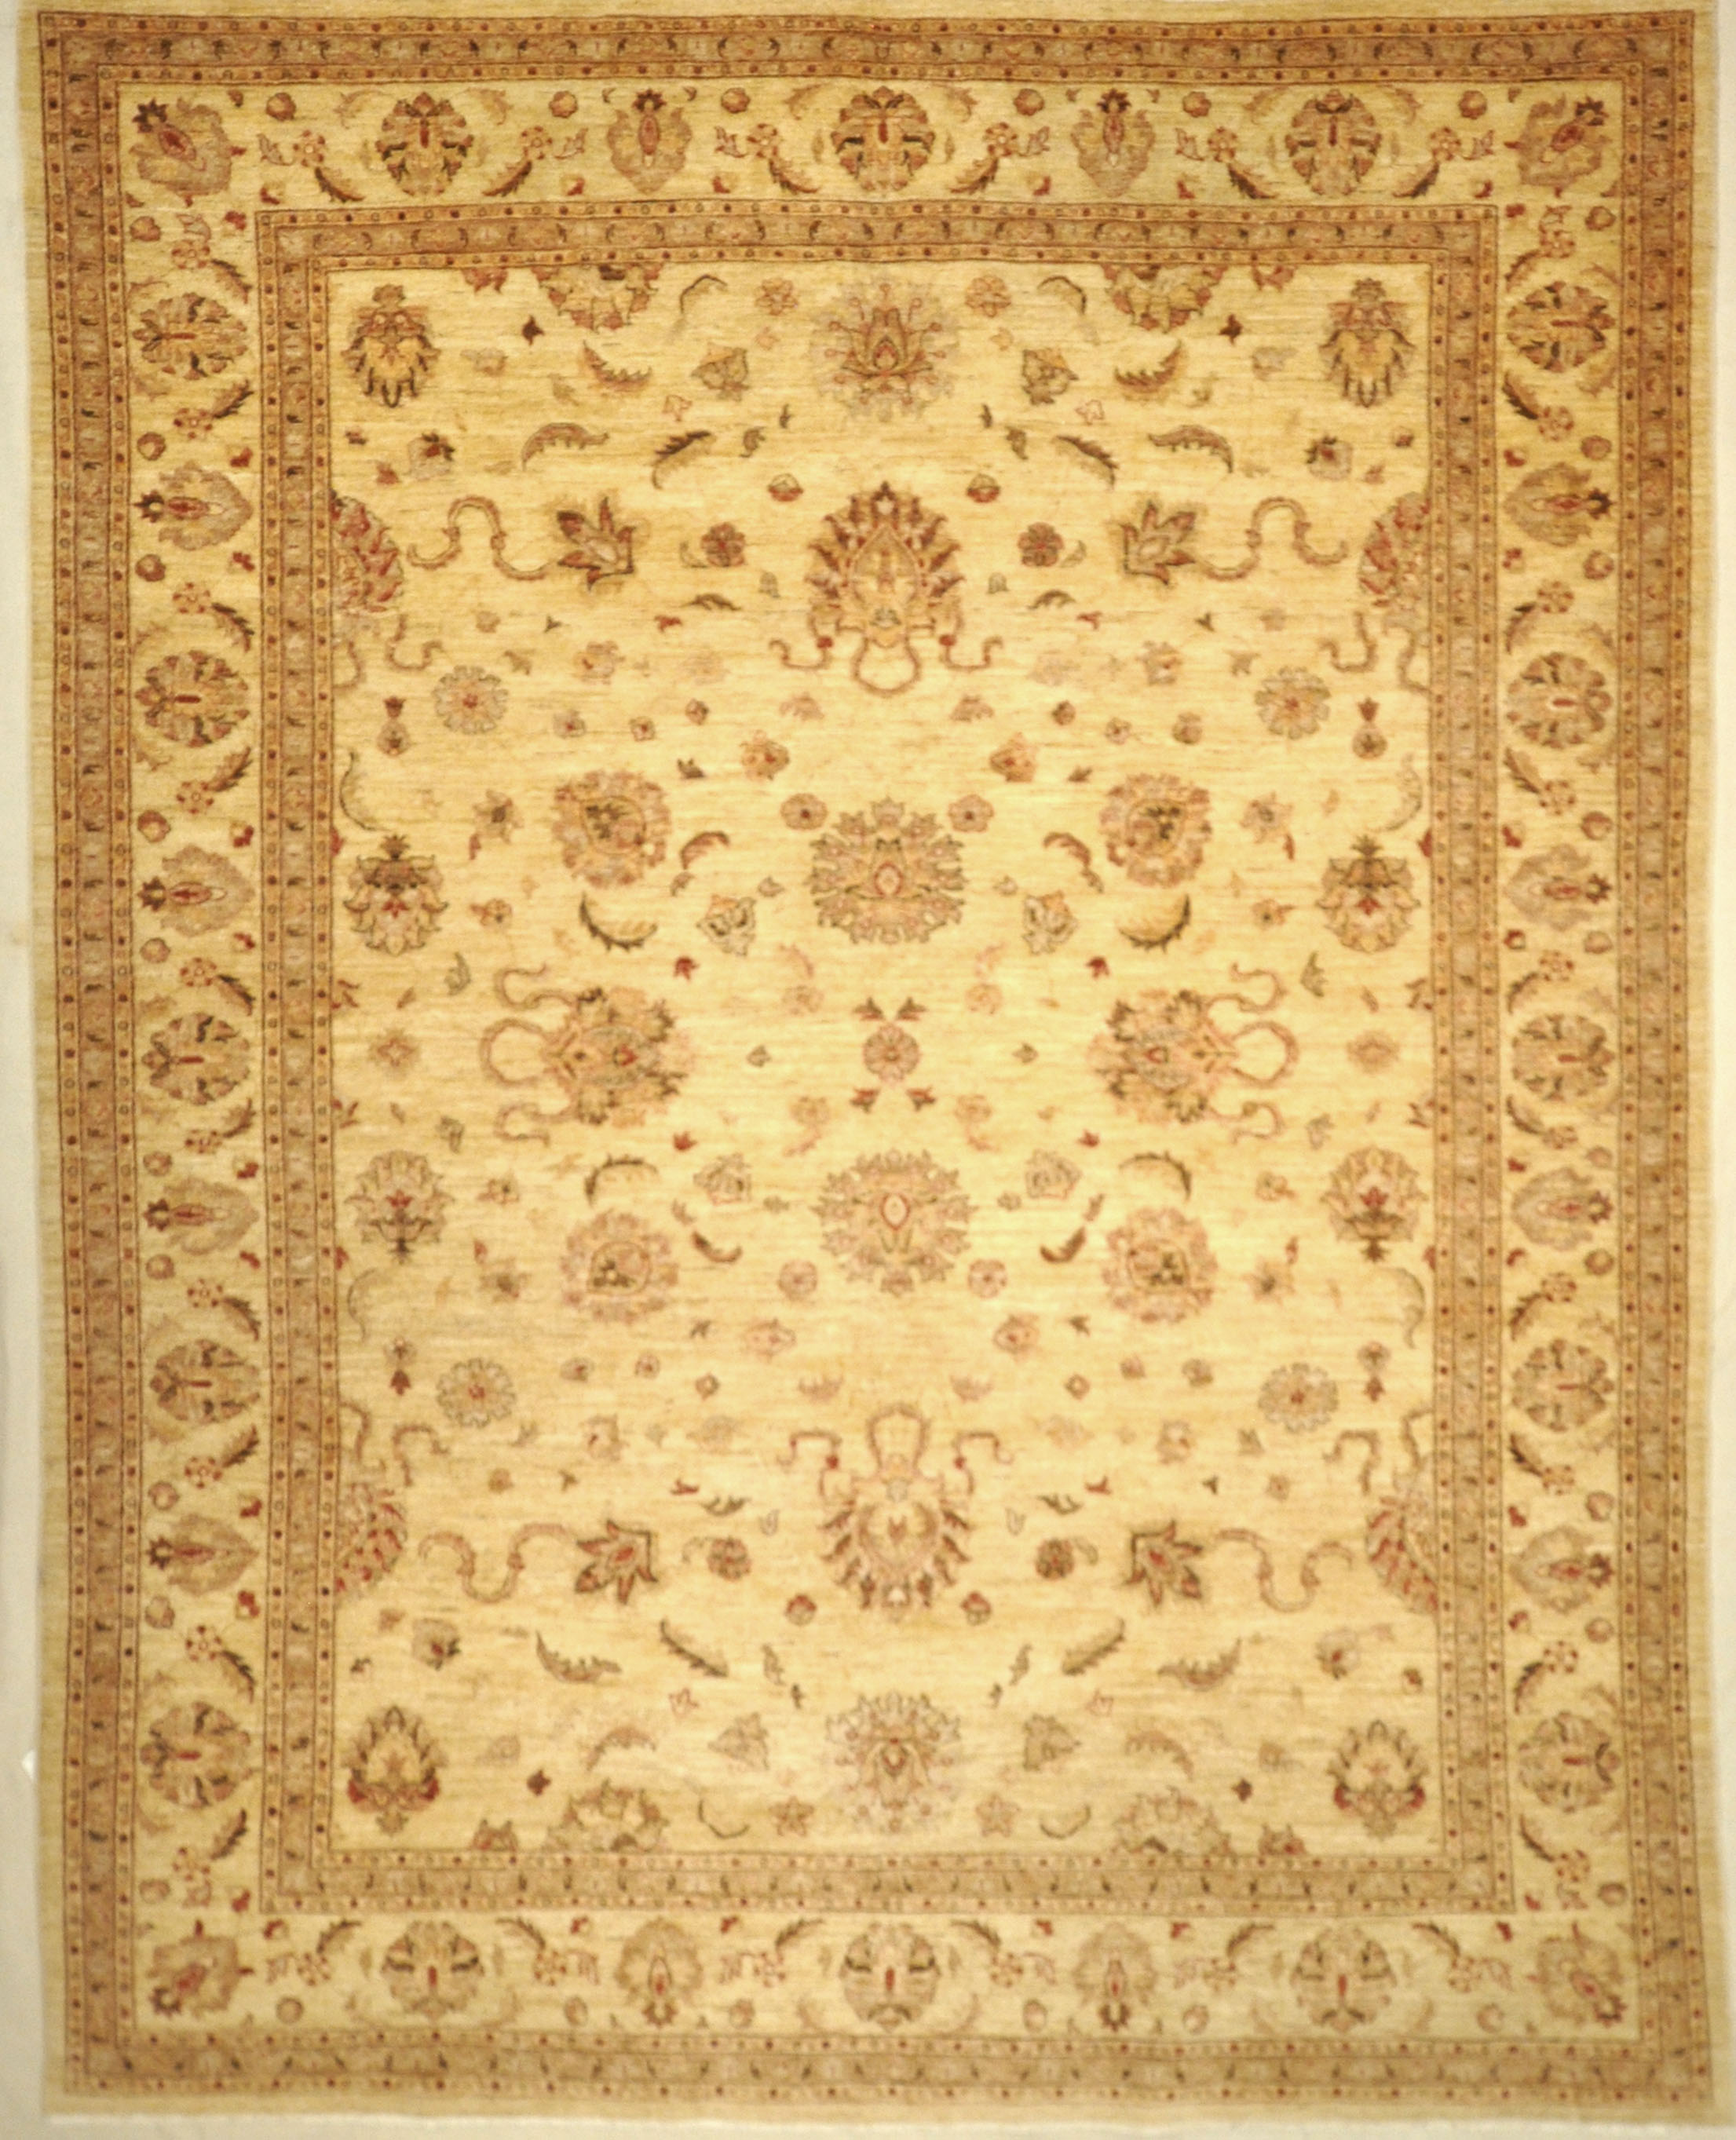 Ziegler and Company Oushak Rug are designed by Michael Kourosh and woven by Ziegler & Company. Sold by Santa Barbara Design Center, Rugs and More.